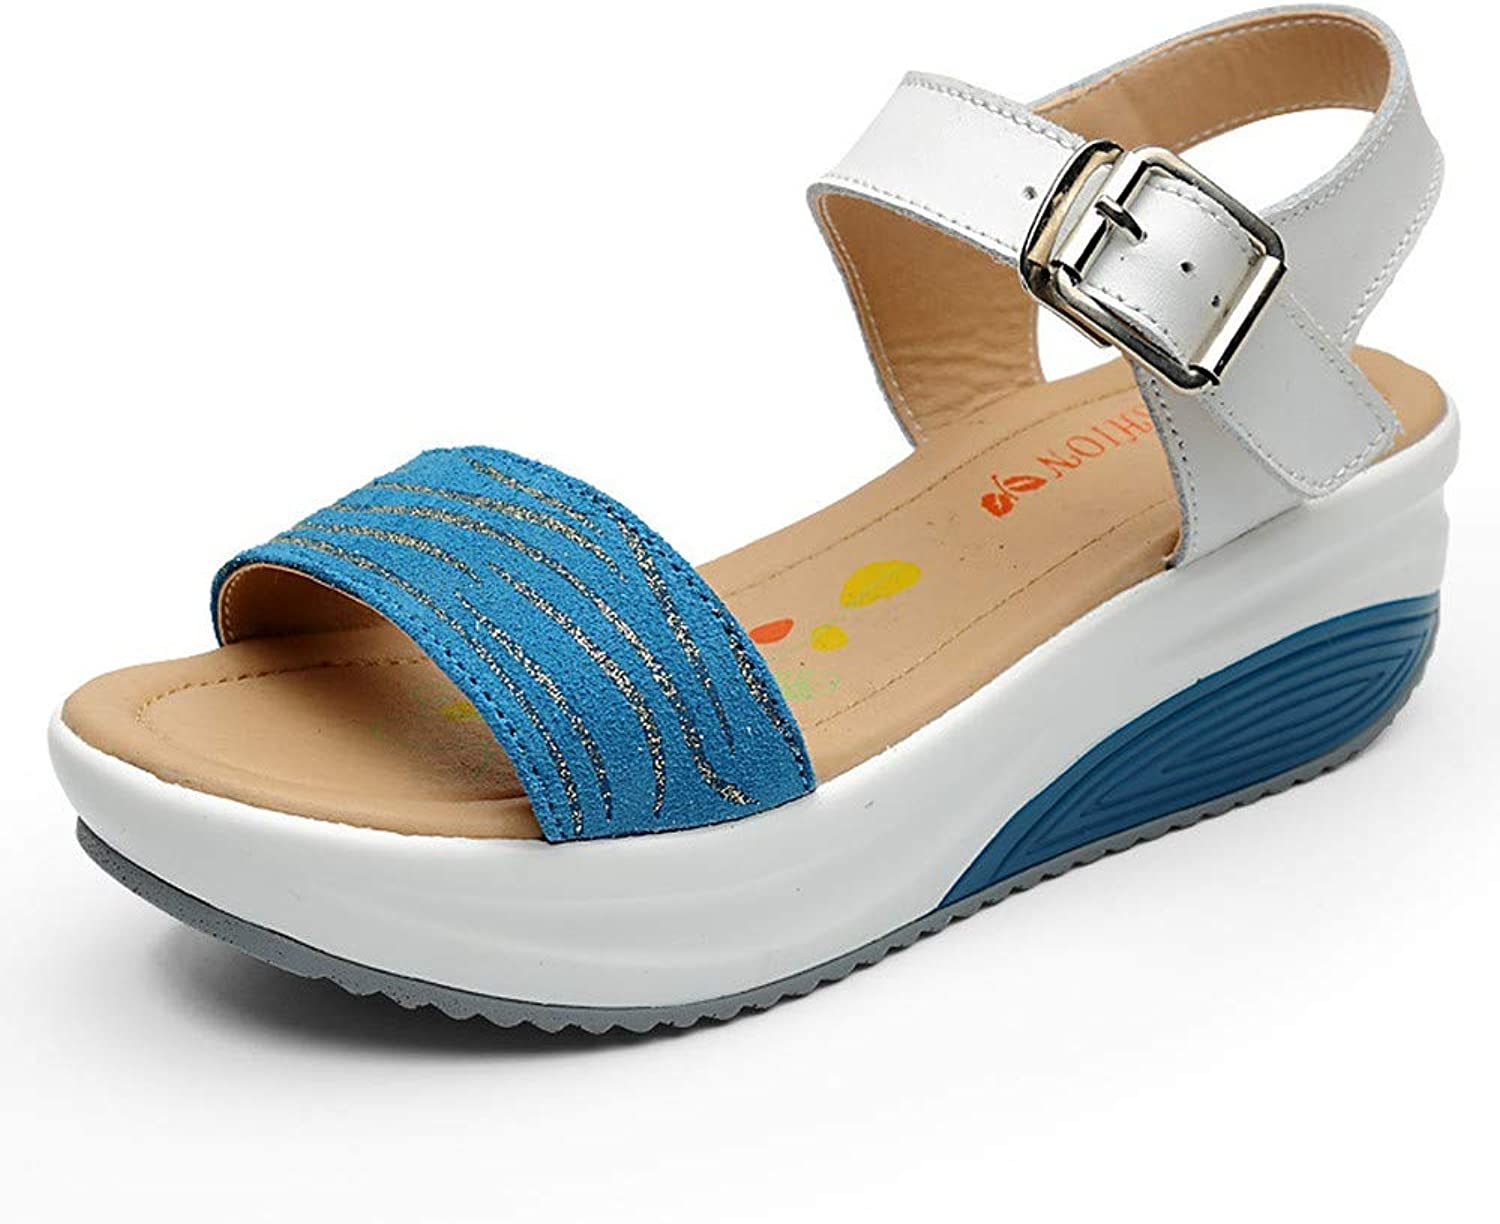 DBQWTY Classic Buckle Sandals for ladies'comfortable Walking Fashion in Summer